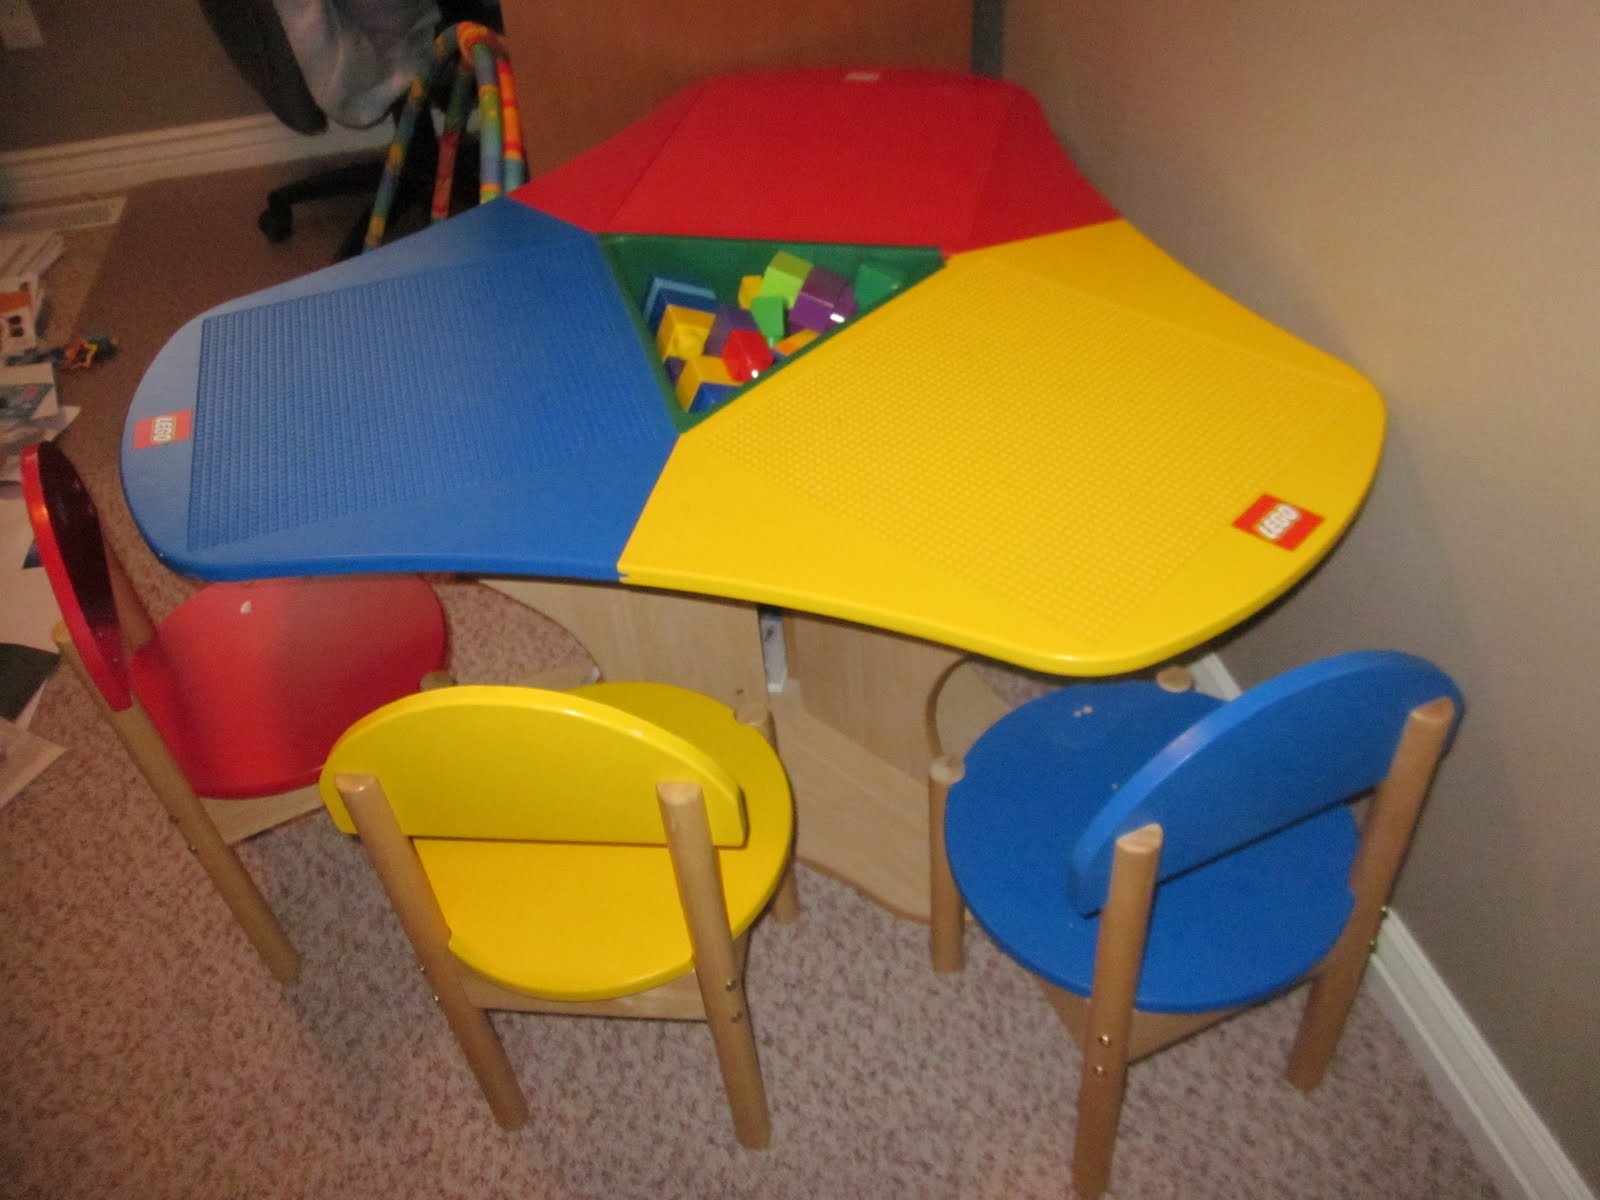 Selling Some Items: Kids lego table with 3 chairs - $150